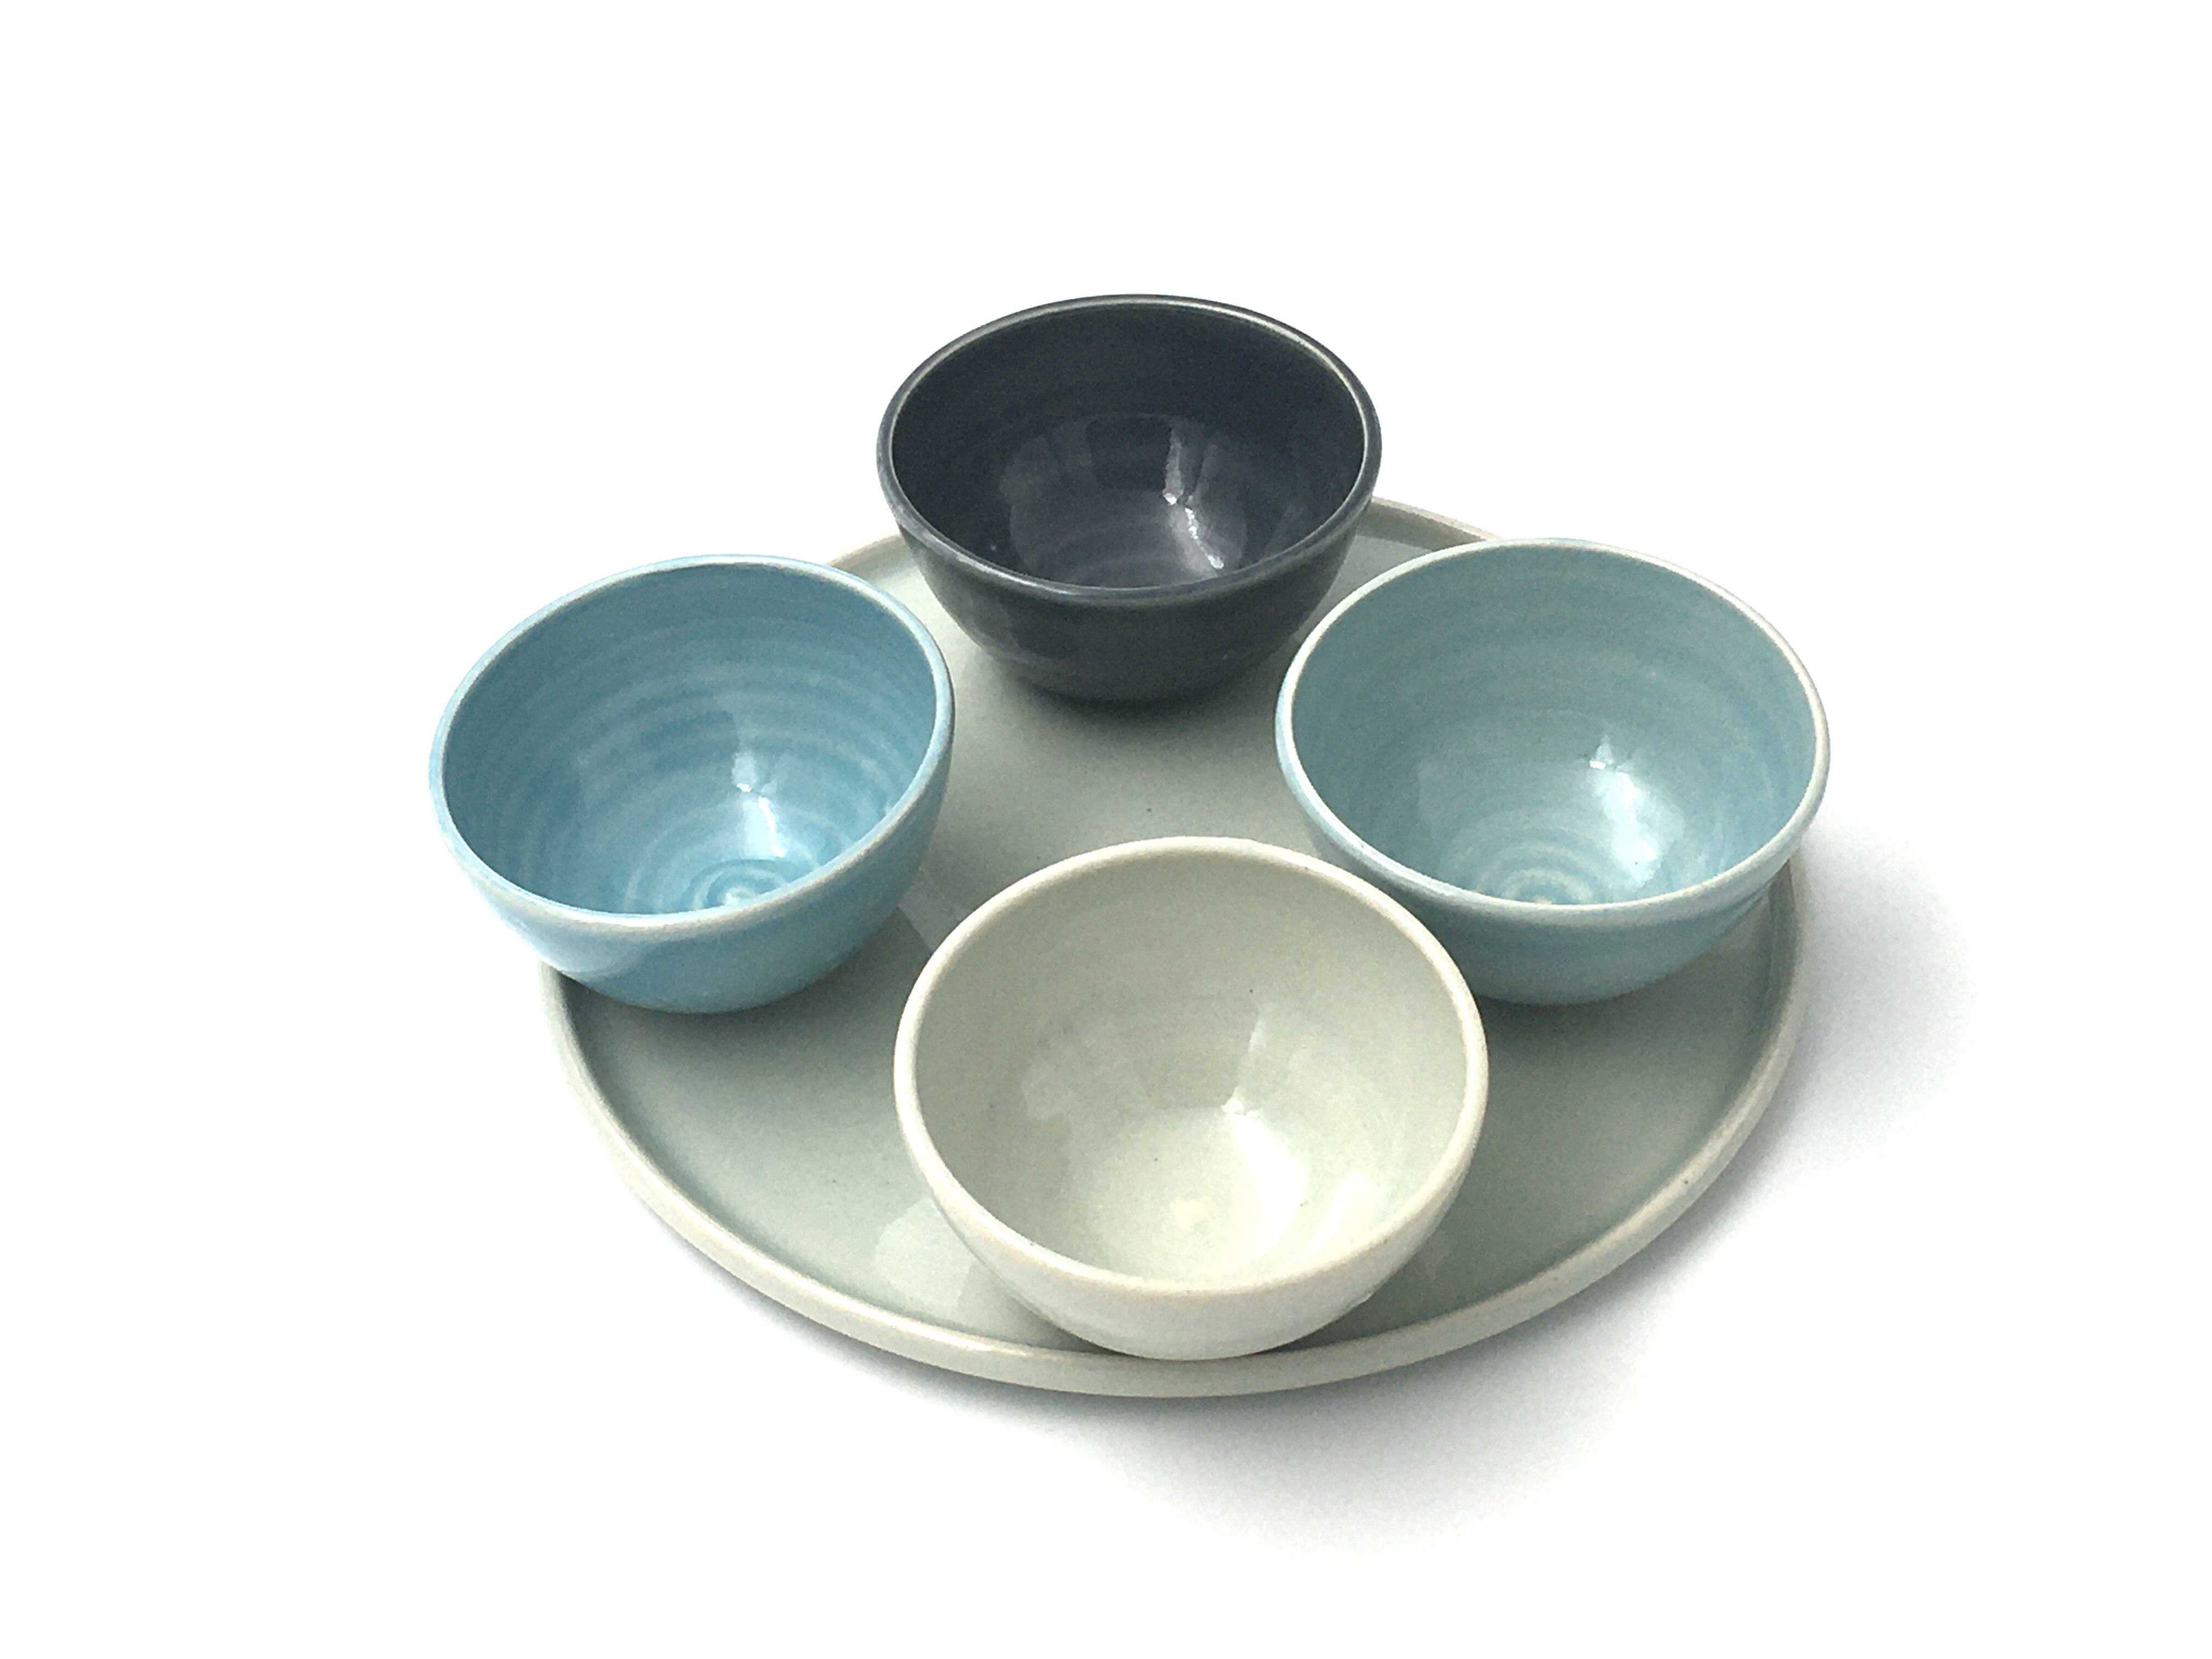 set of bowls and plate